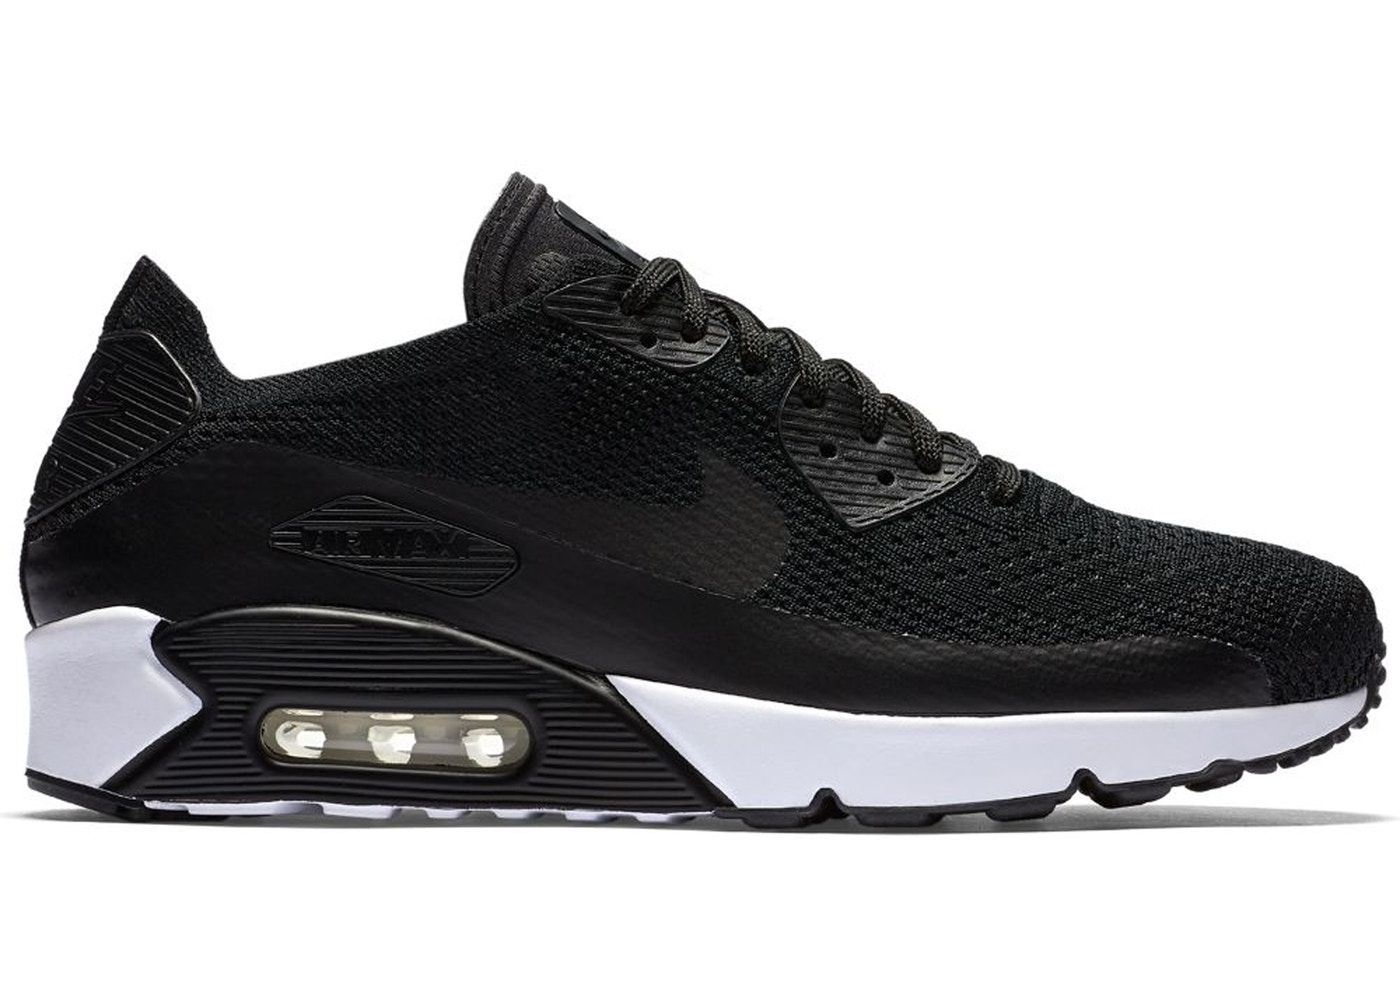 8c137a1e0a Buy Nike Air Max 90 Shoes & Deadstock Sneakers